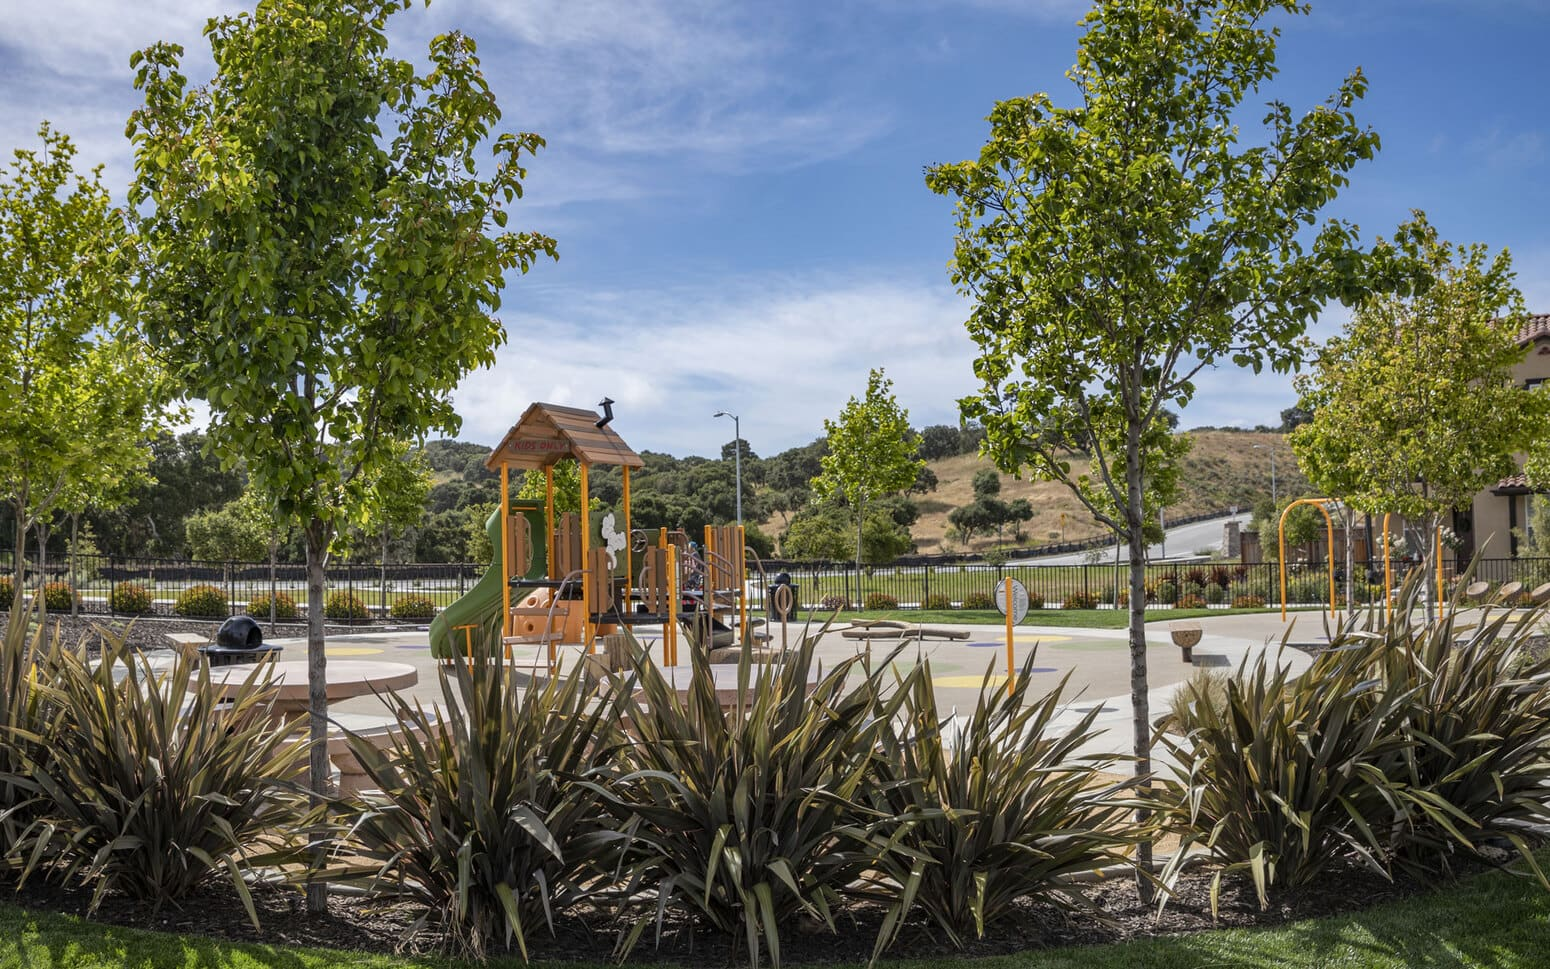 East Garrison Neighborhood Parks